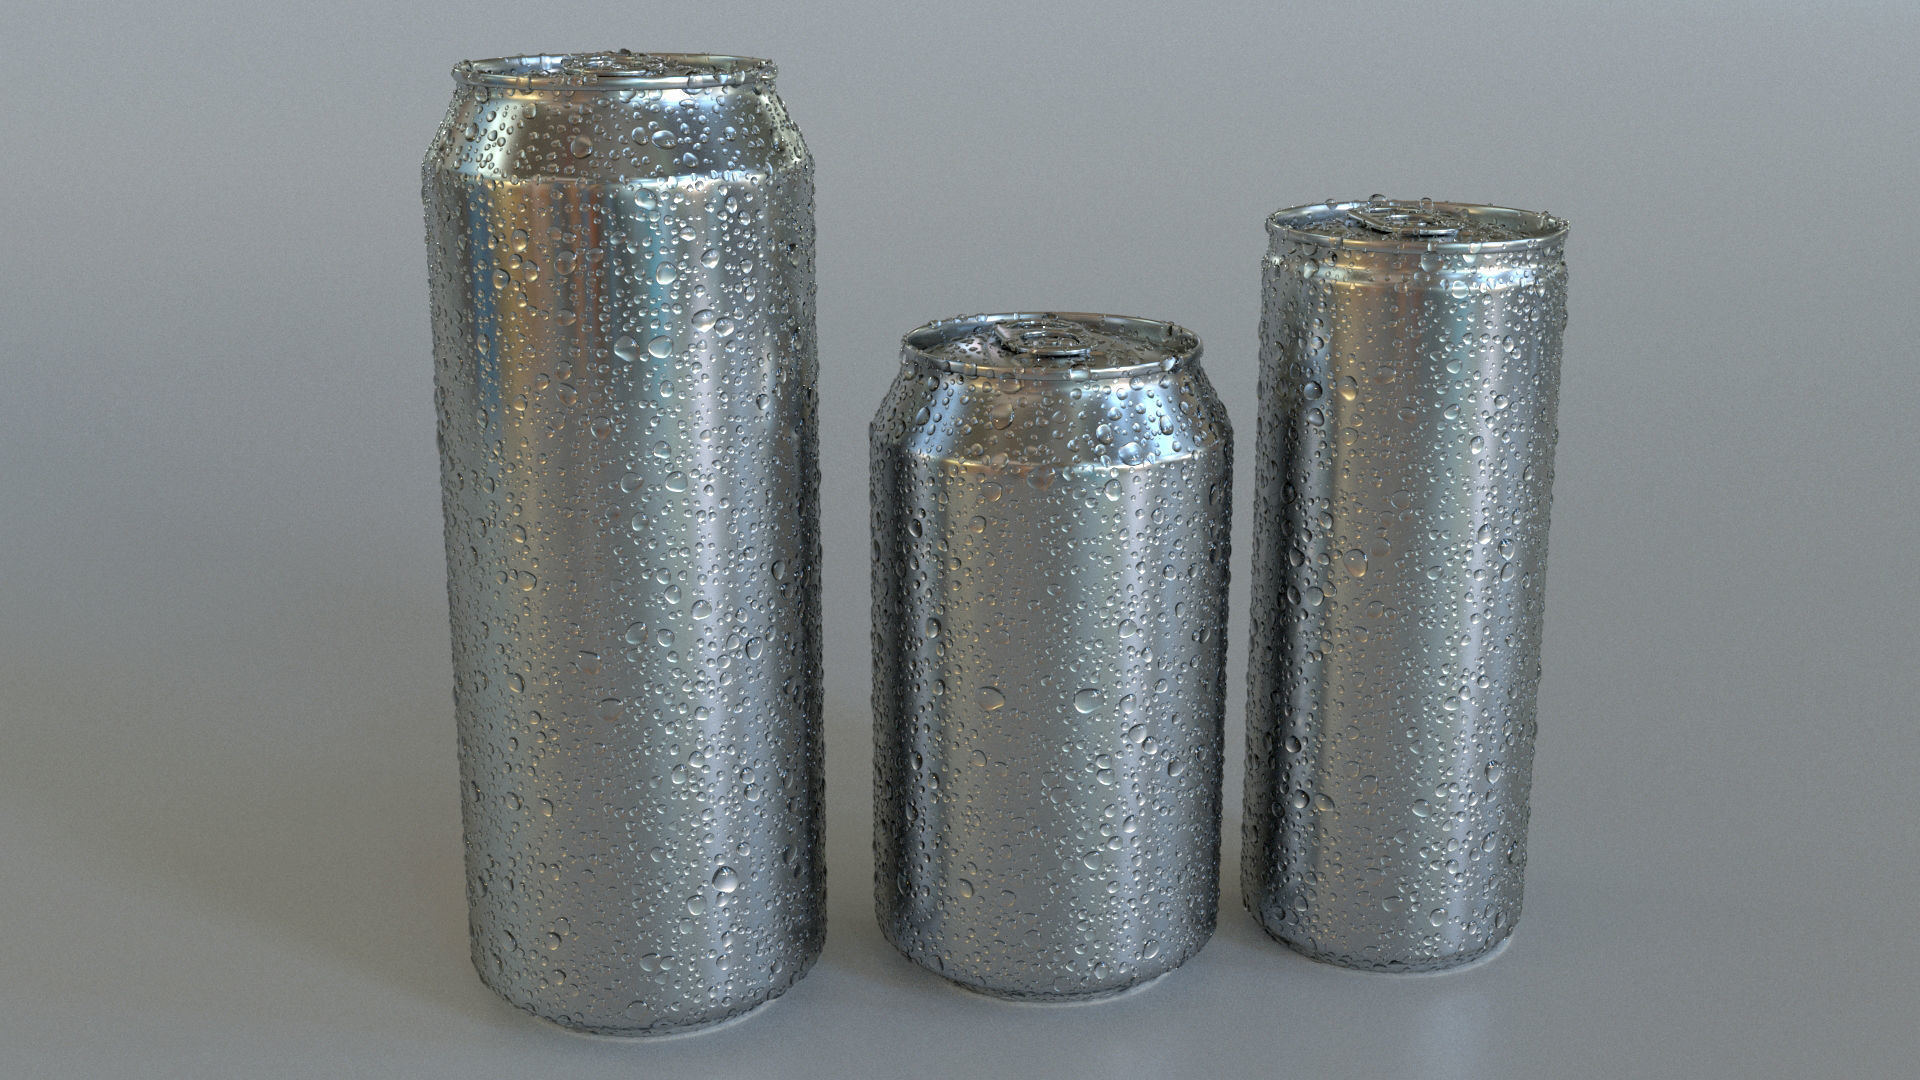 3D Beverage Can Wet - 3DS Max and VRAY RENDER